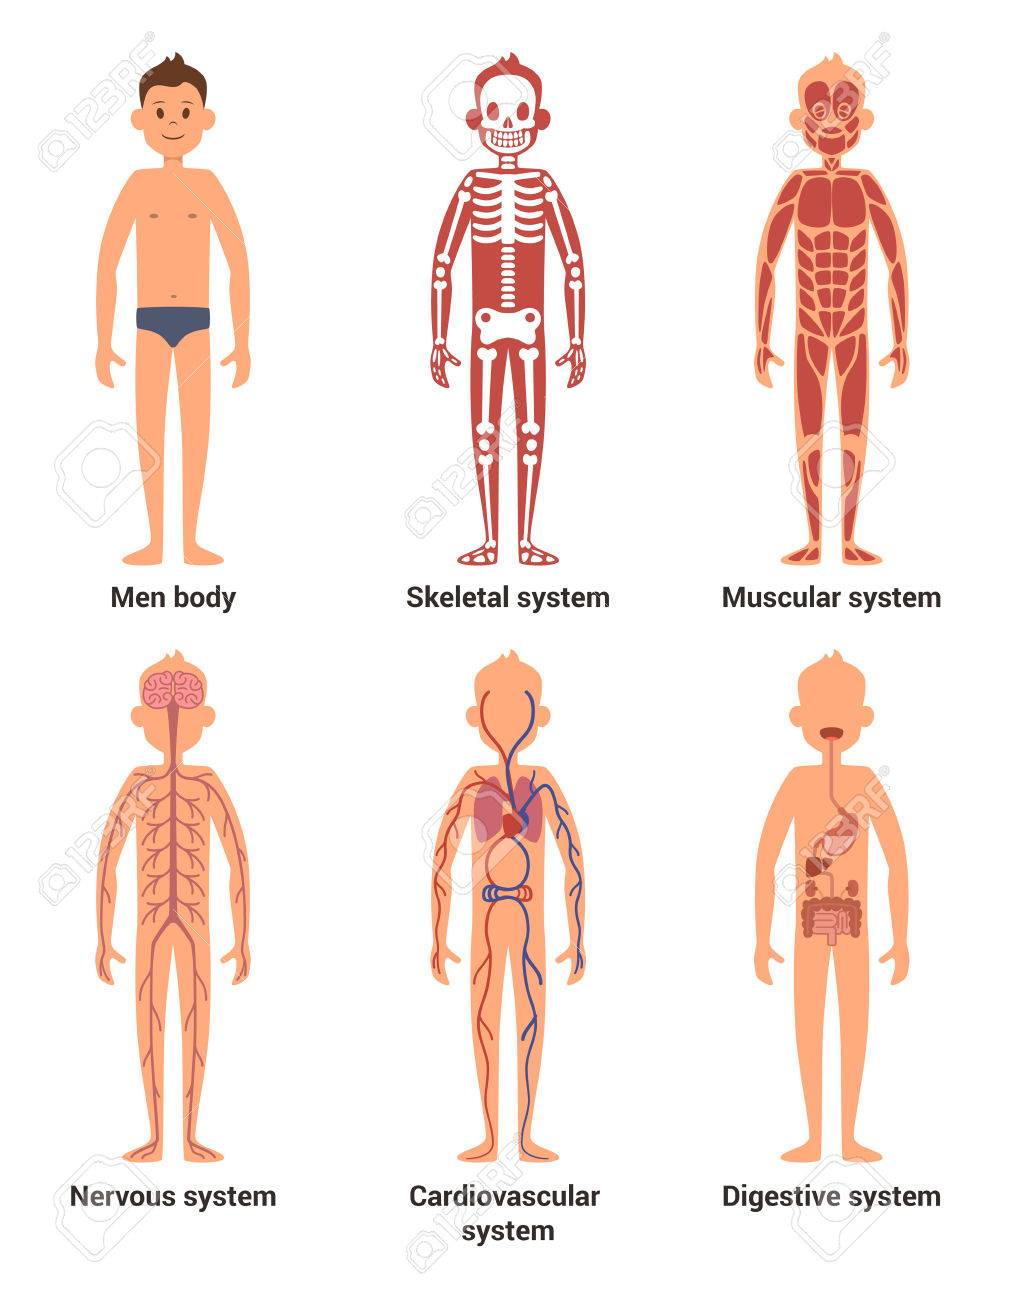 Body anatomy of men. Nerves and muscular systems, heart and other organs. Vector illustration set - 76736510